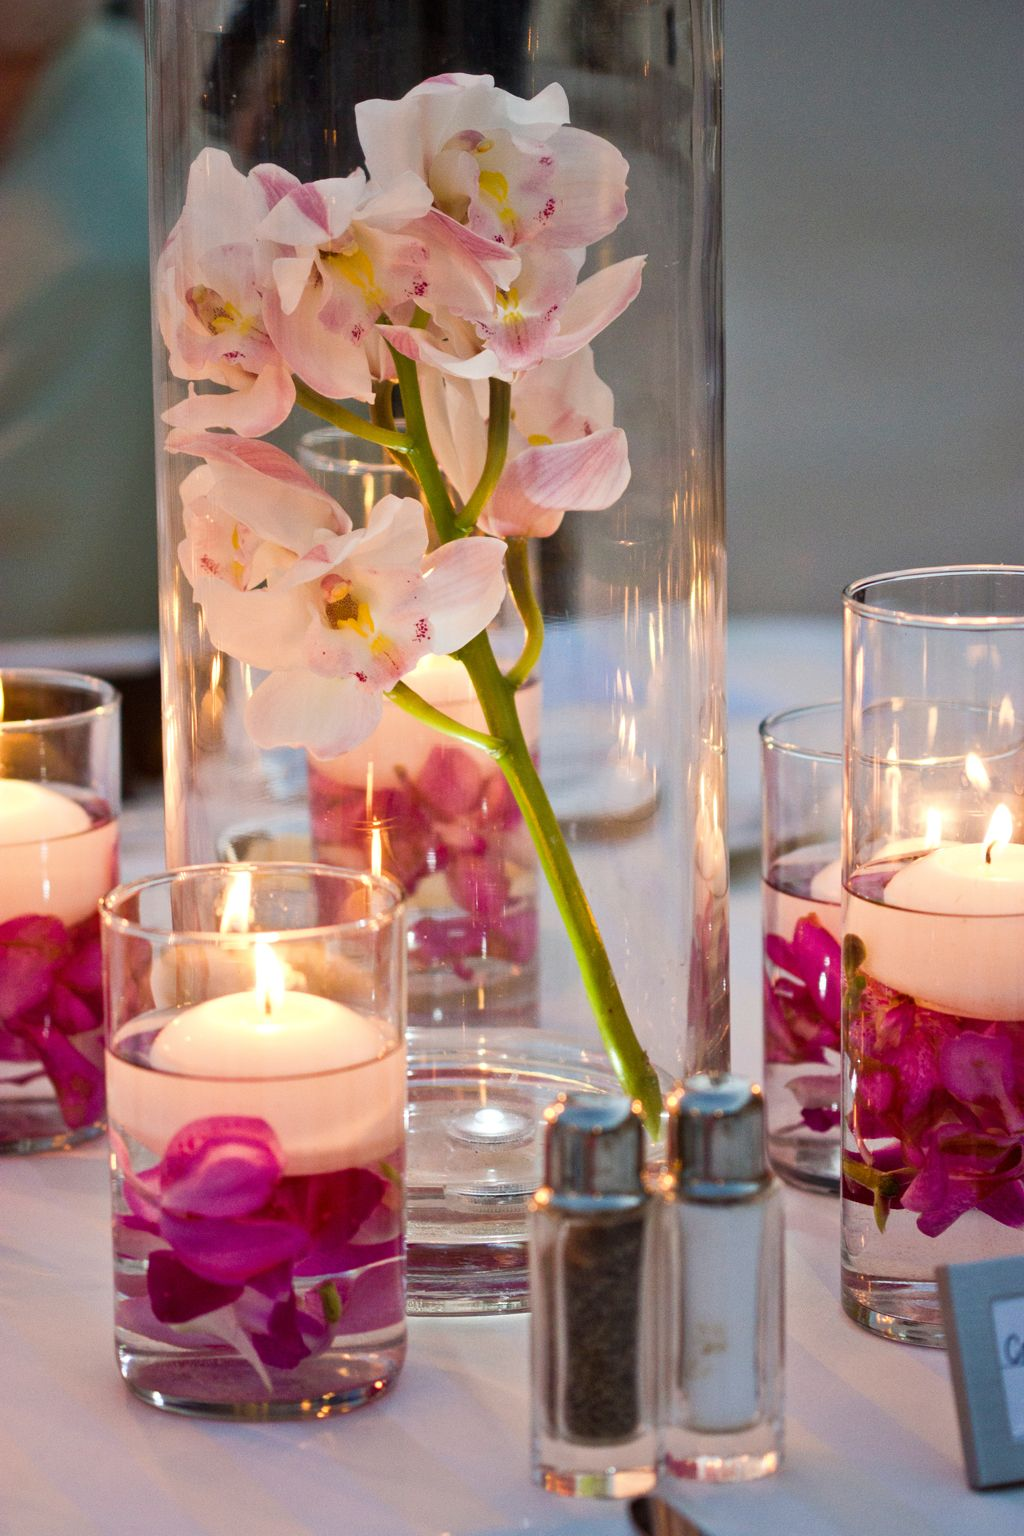 Maui Wedding Orchid Centerpieces With Floating Candles By Ushima Flowers Image Creative Photography